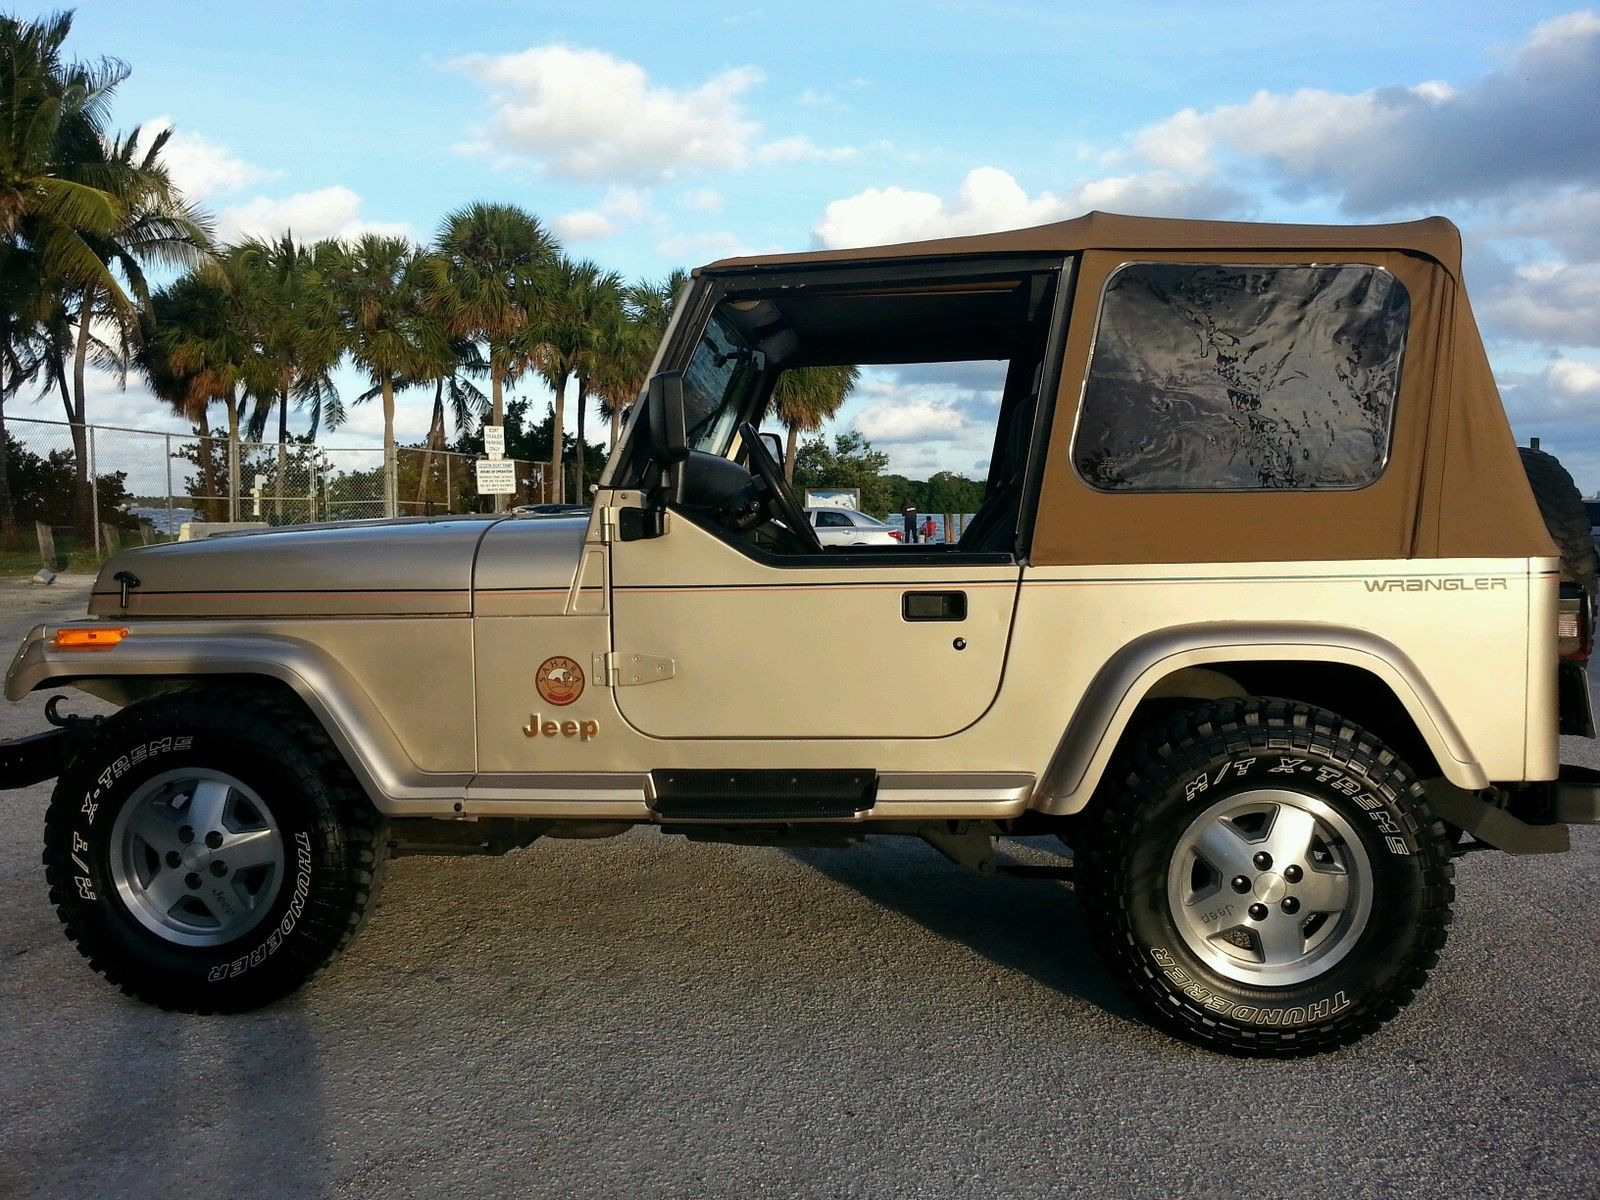 1993 jeep wrangler sahara sport utility 2 door 4 0l one owner florida jeep classic jeep. Black Bedroom Furniture Sets. Home Design Ideas